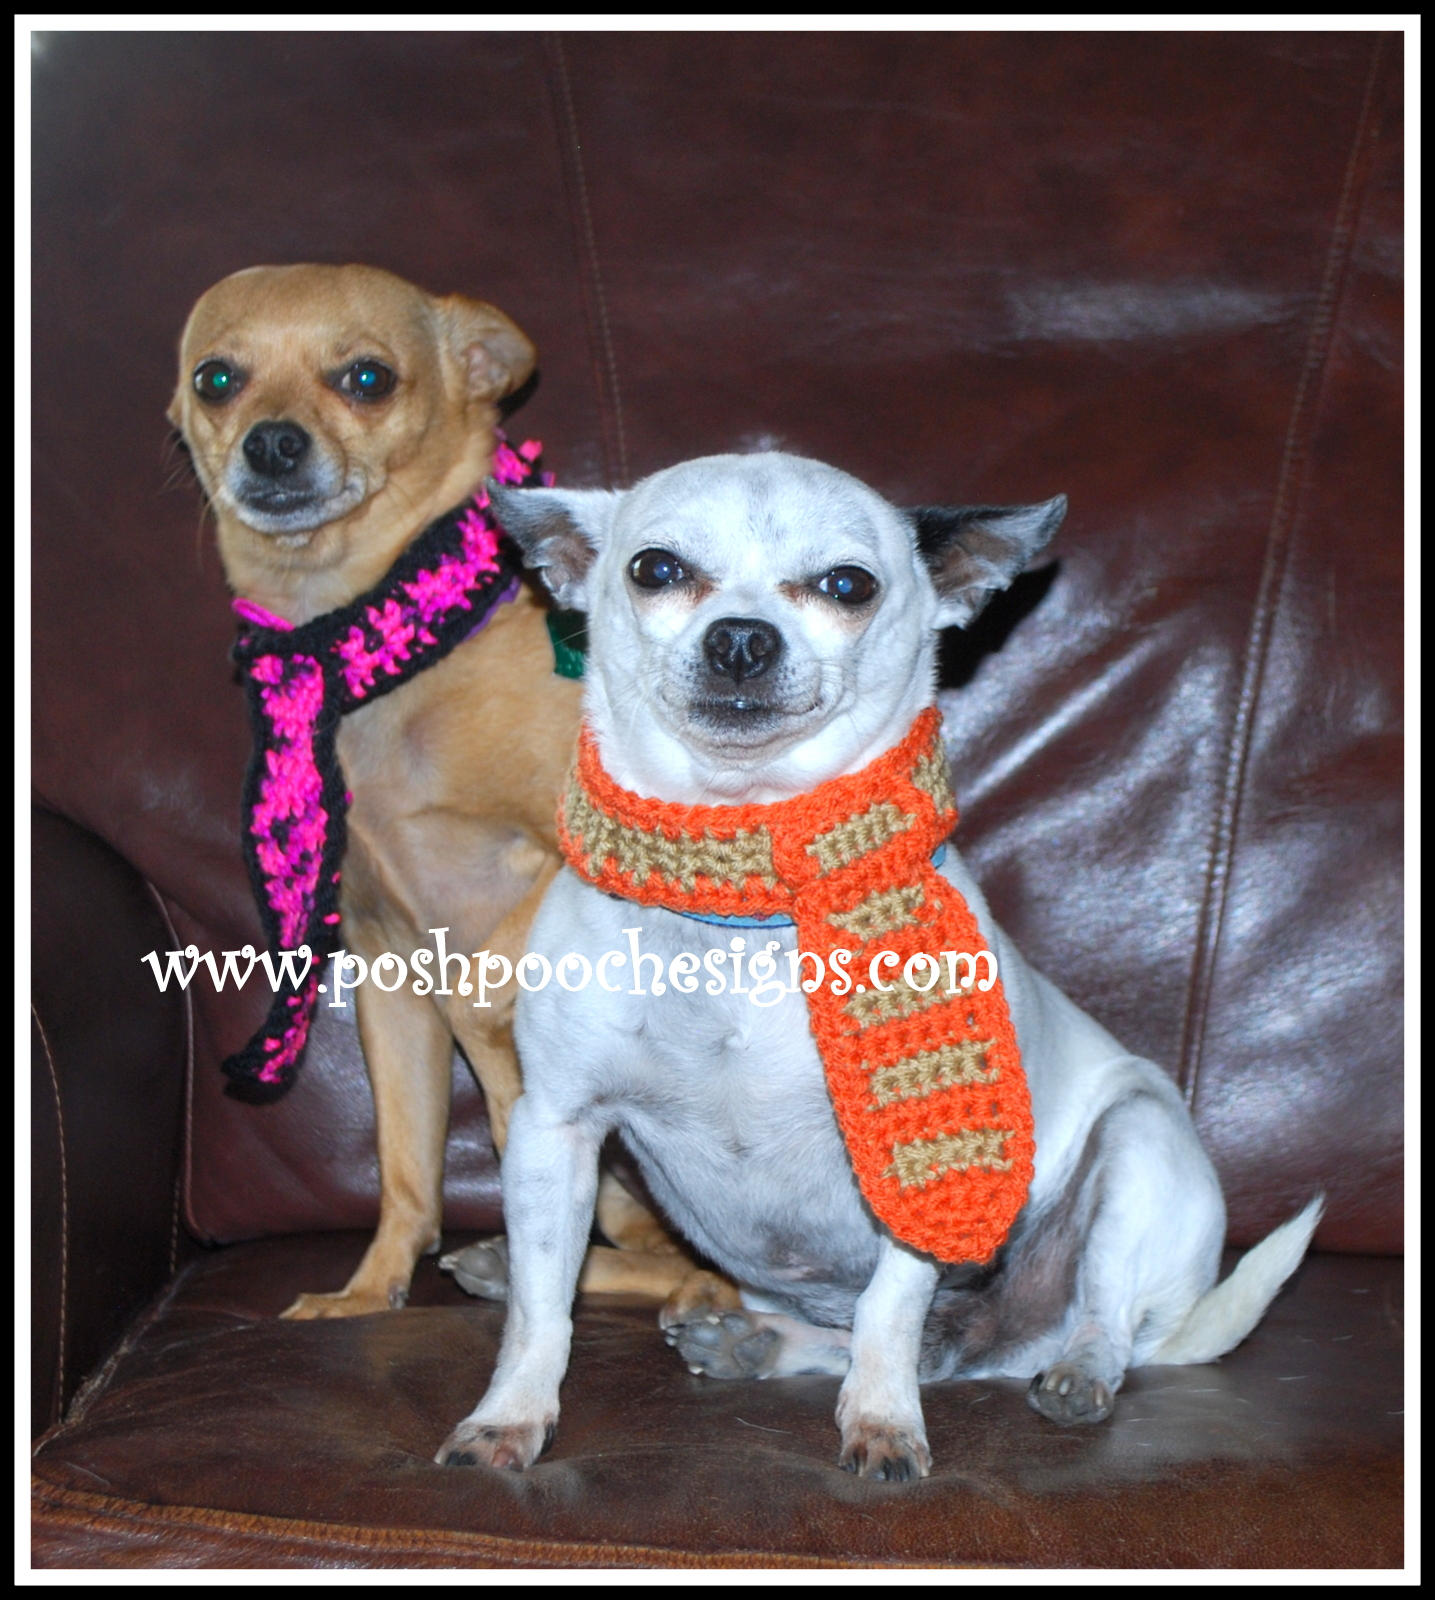 Posh Pooch Designs Dog Clothes: Dog Neck Tie Crochet Pattern